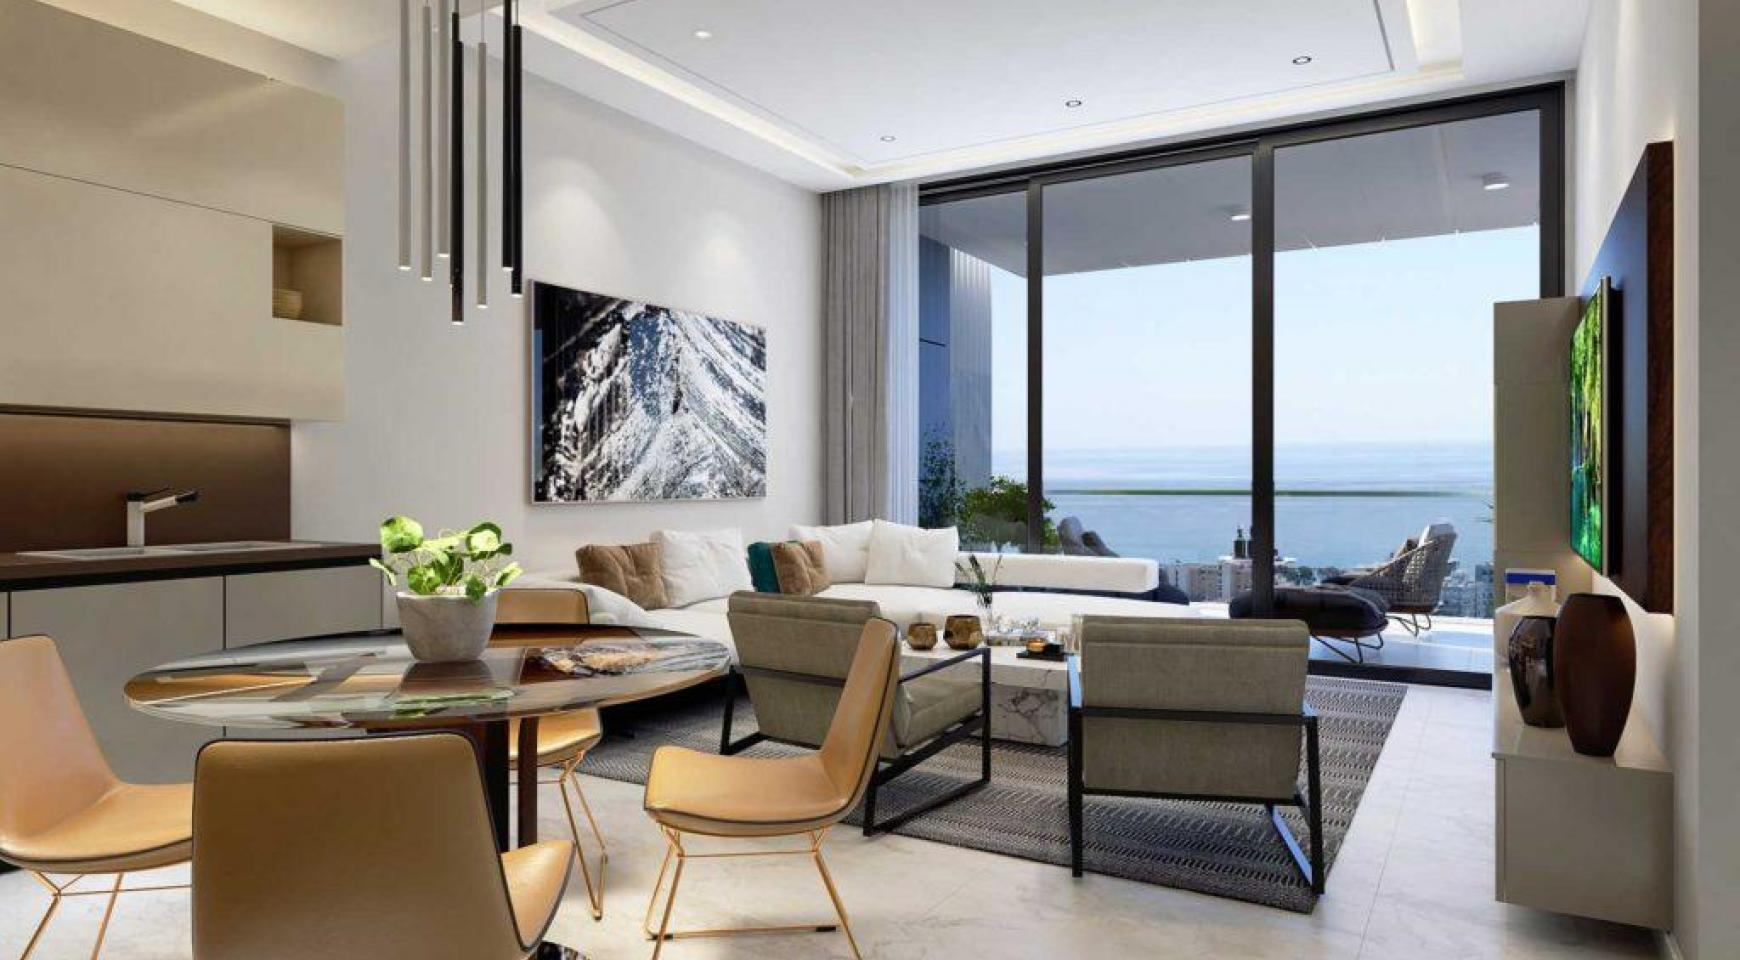 3 Bedroom Apartment with Sea Views in a Luxury Complex - 4